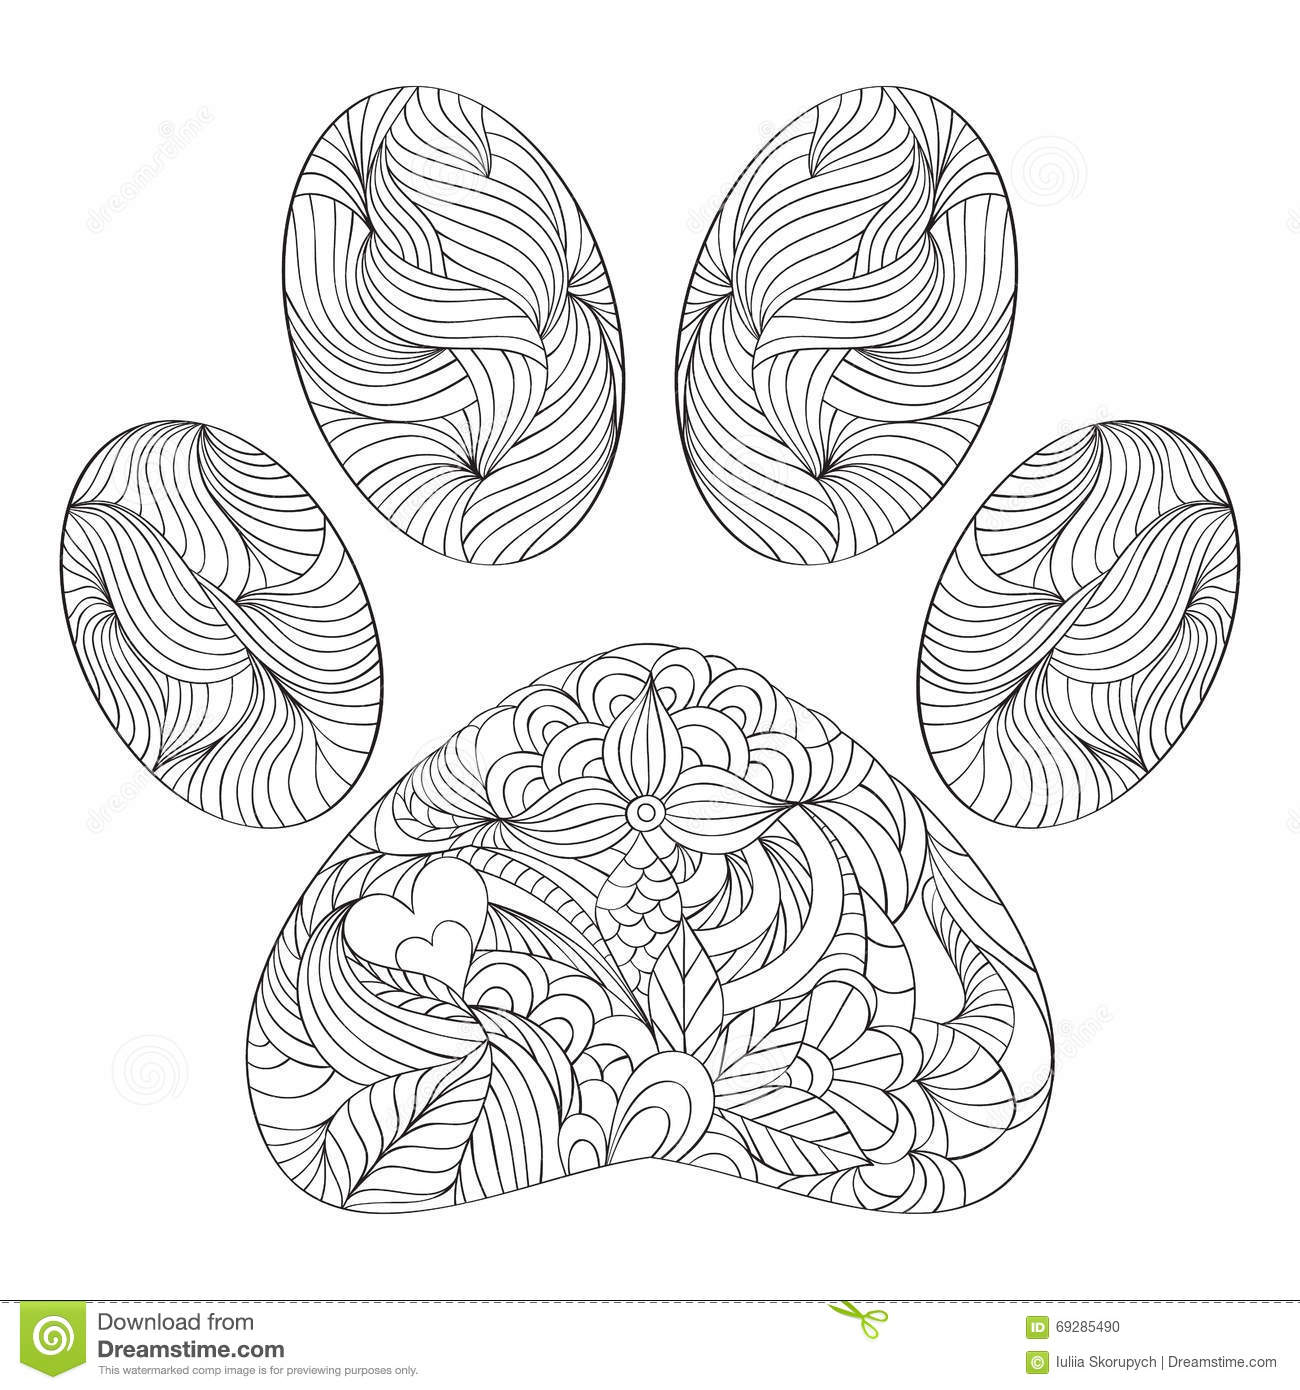 paw print coloring pages - photo#26